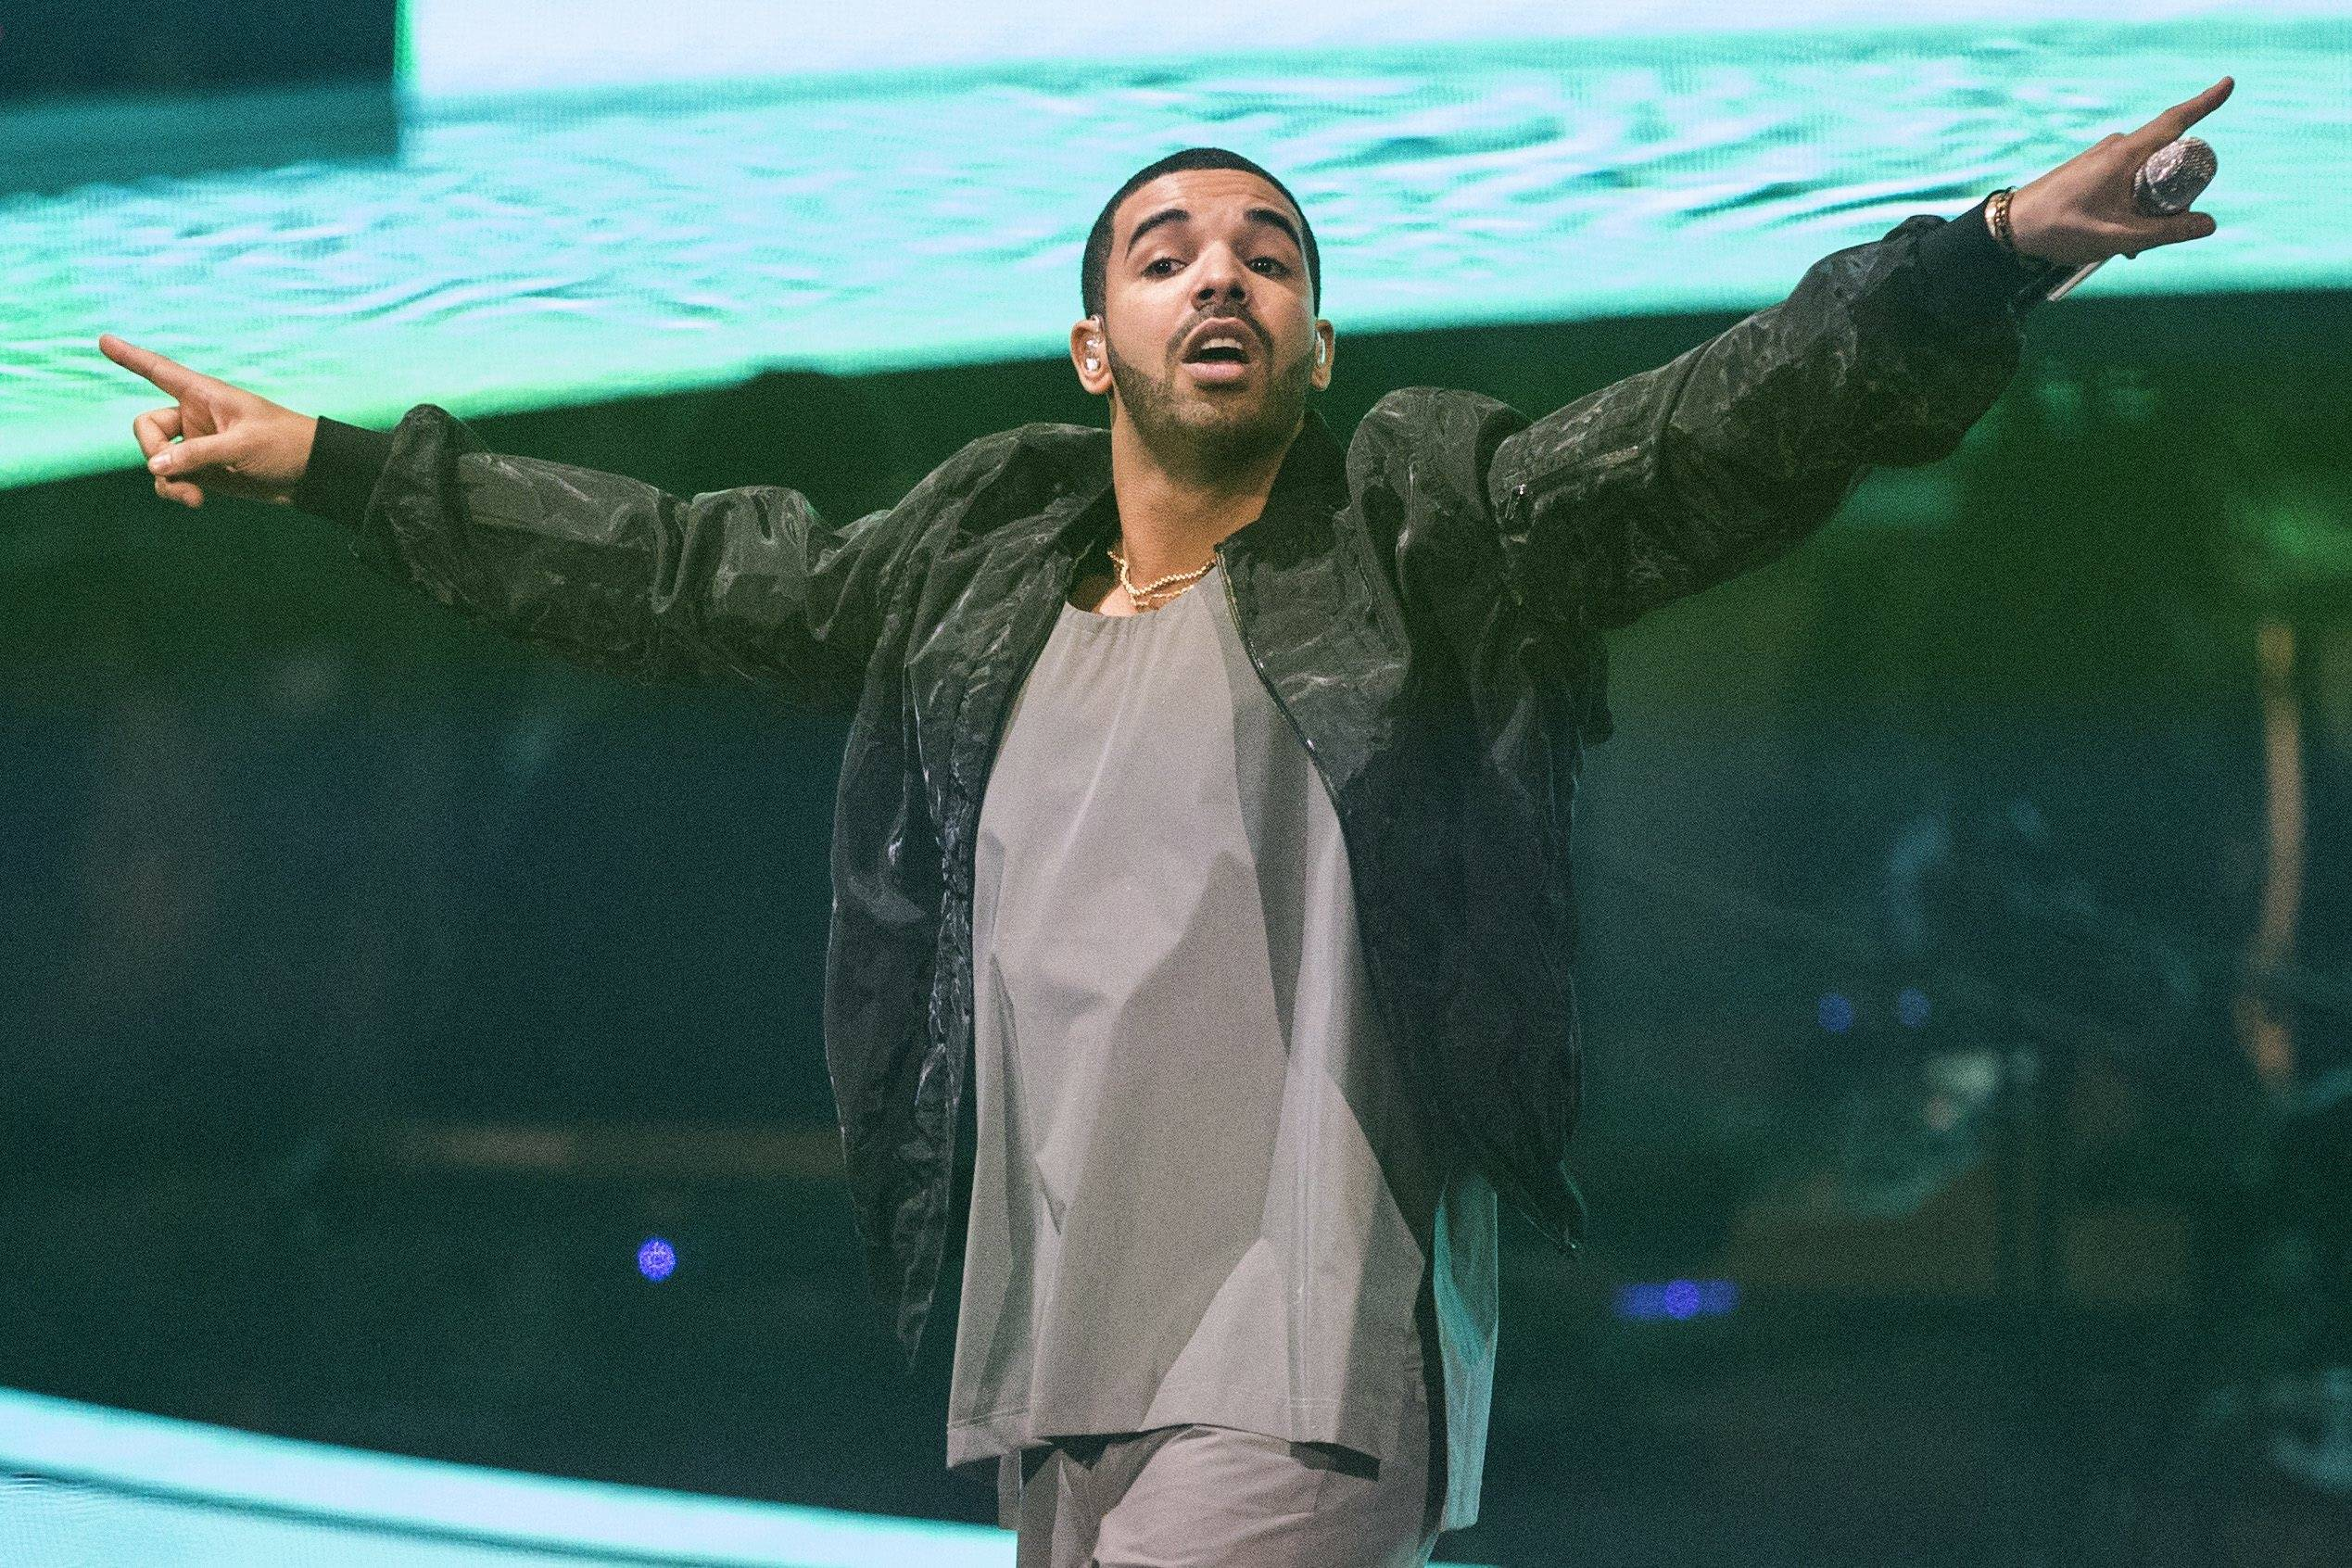 Drake will host the July 16 ESPYs sports awards show on ESPN in Los Angeles.